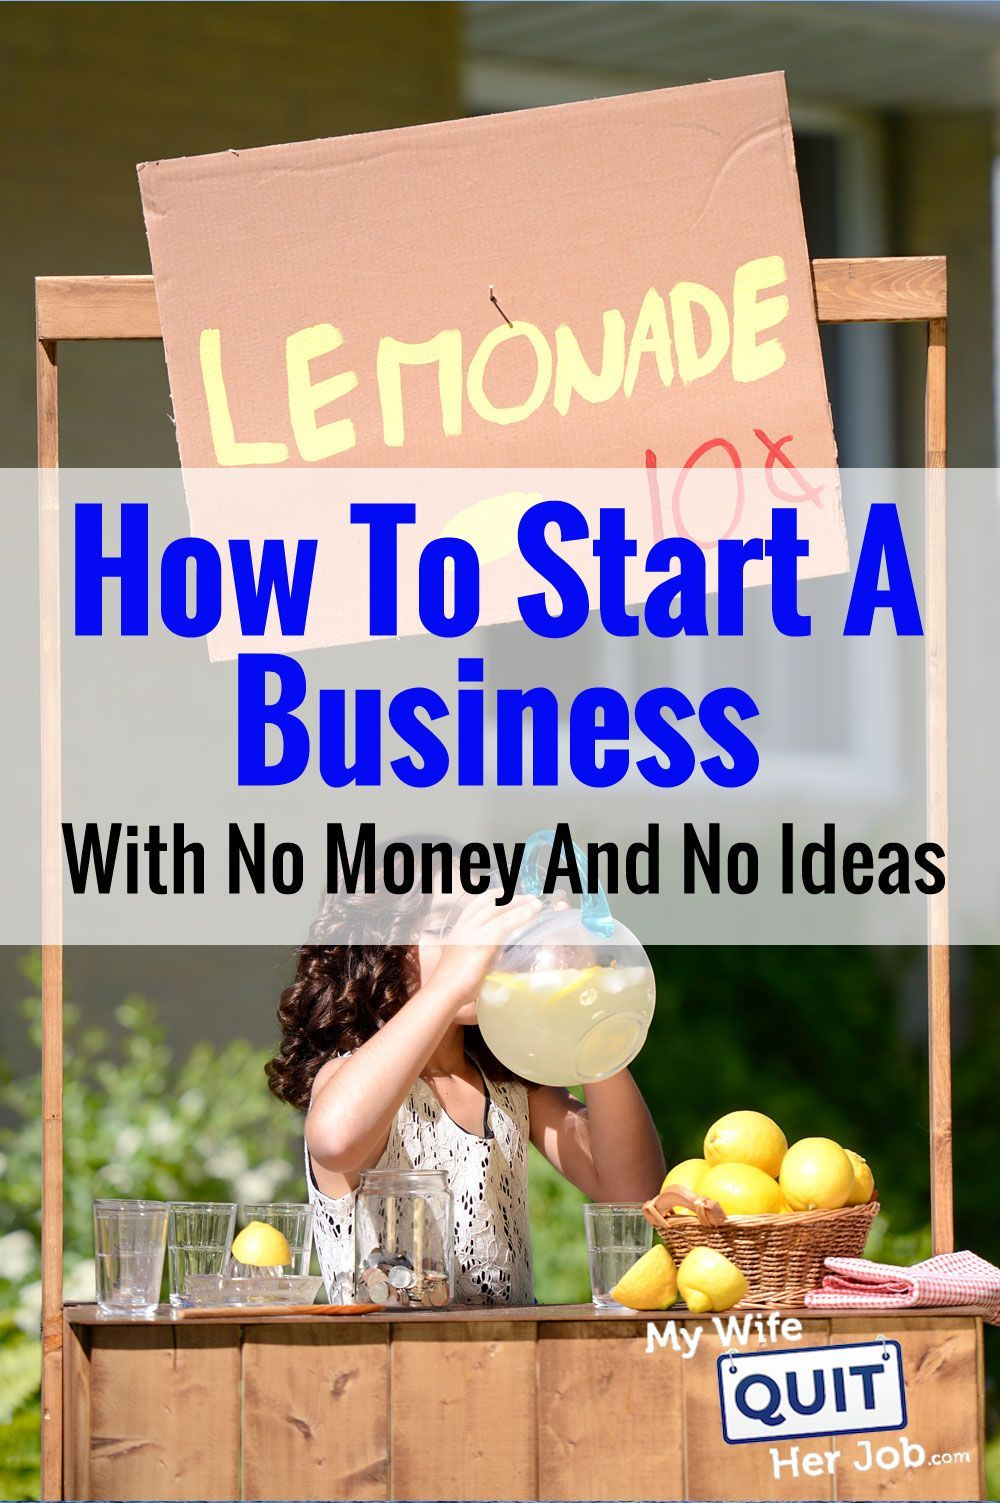 How To Start A Business With No Money. Here's Exactly What